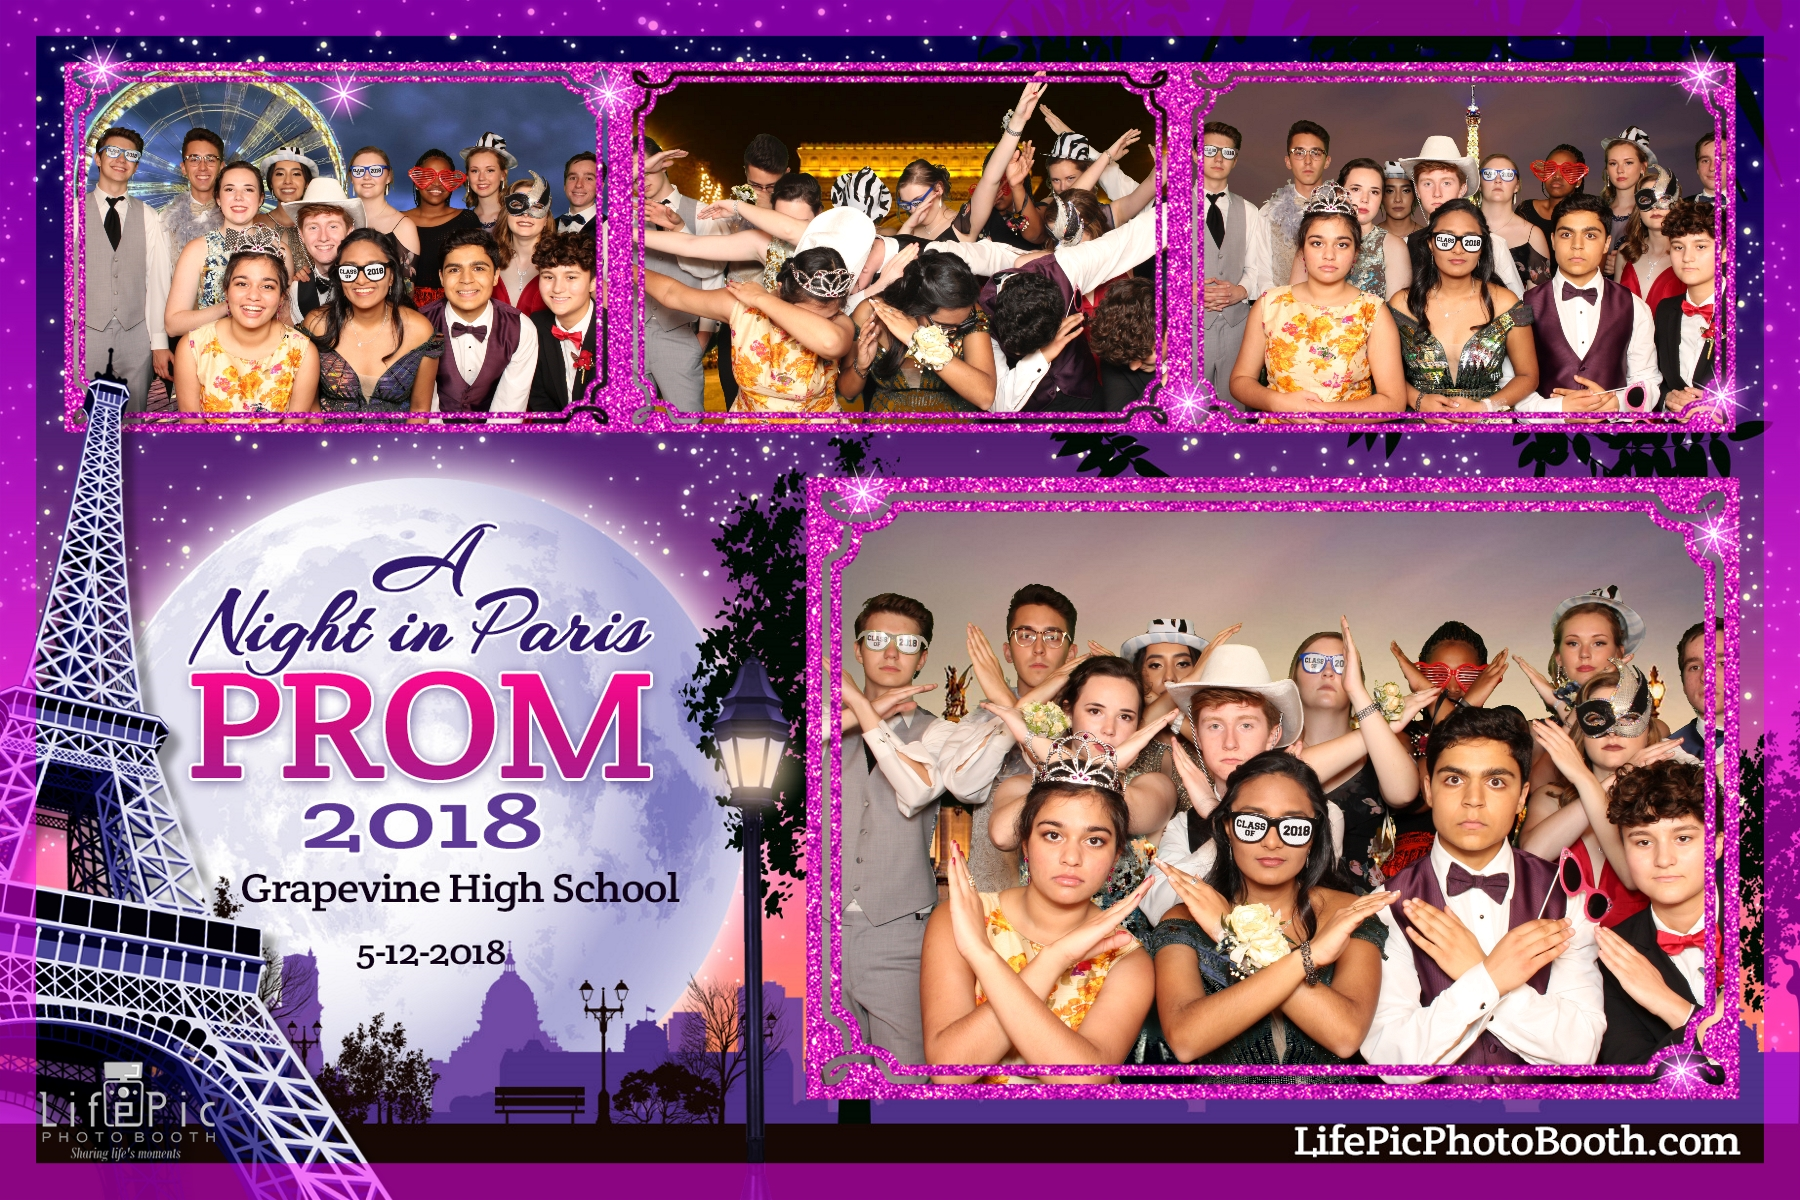 Grapevine High School Prom_2018-05-12_22